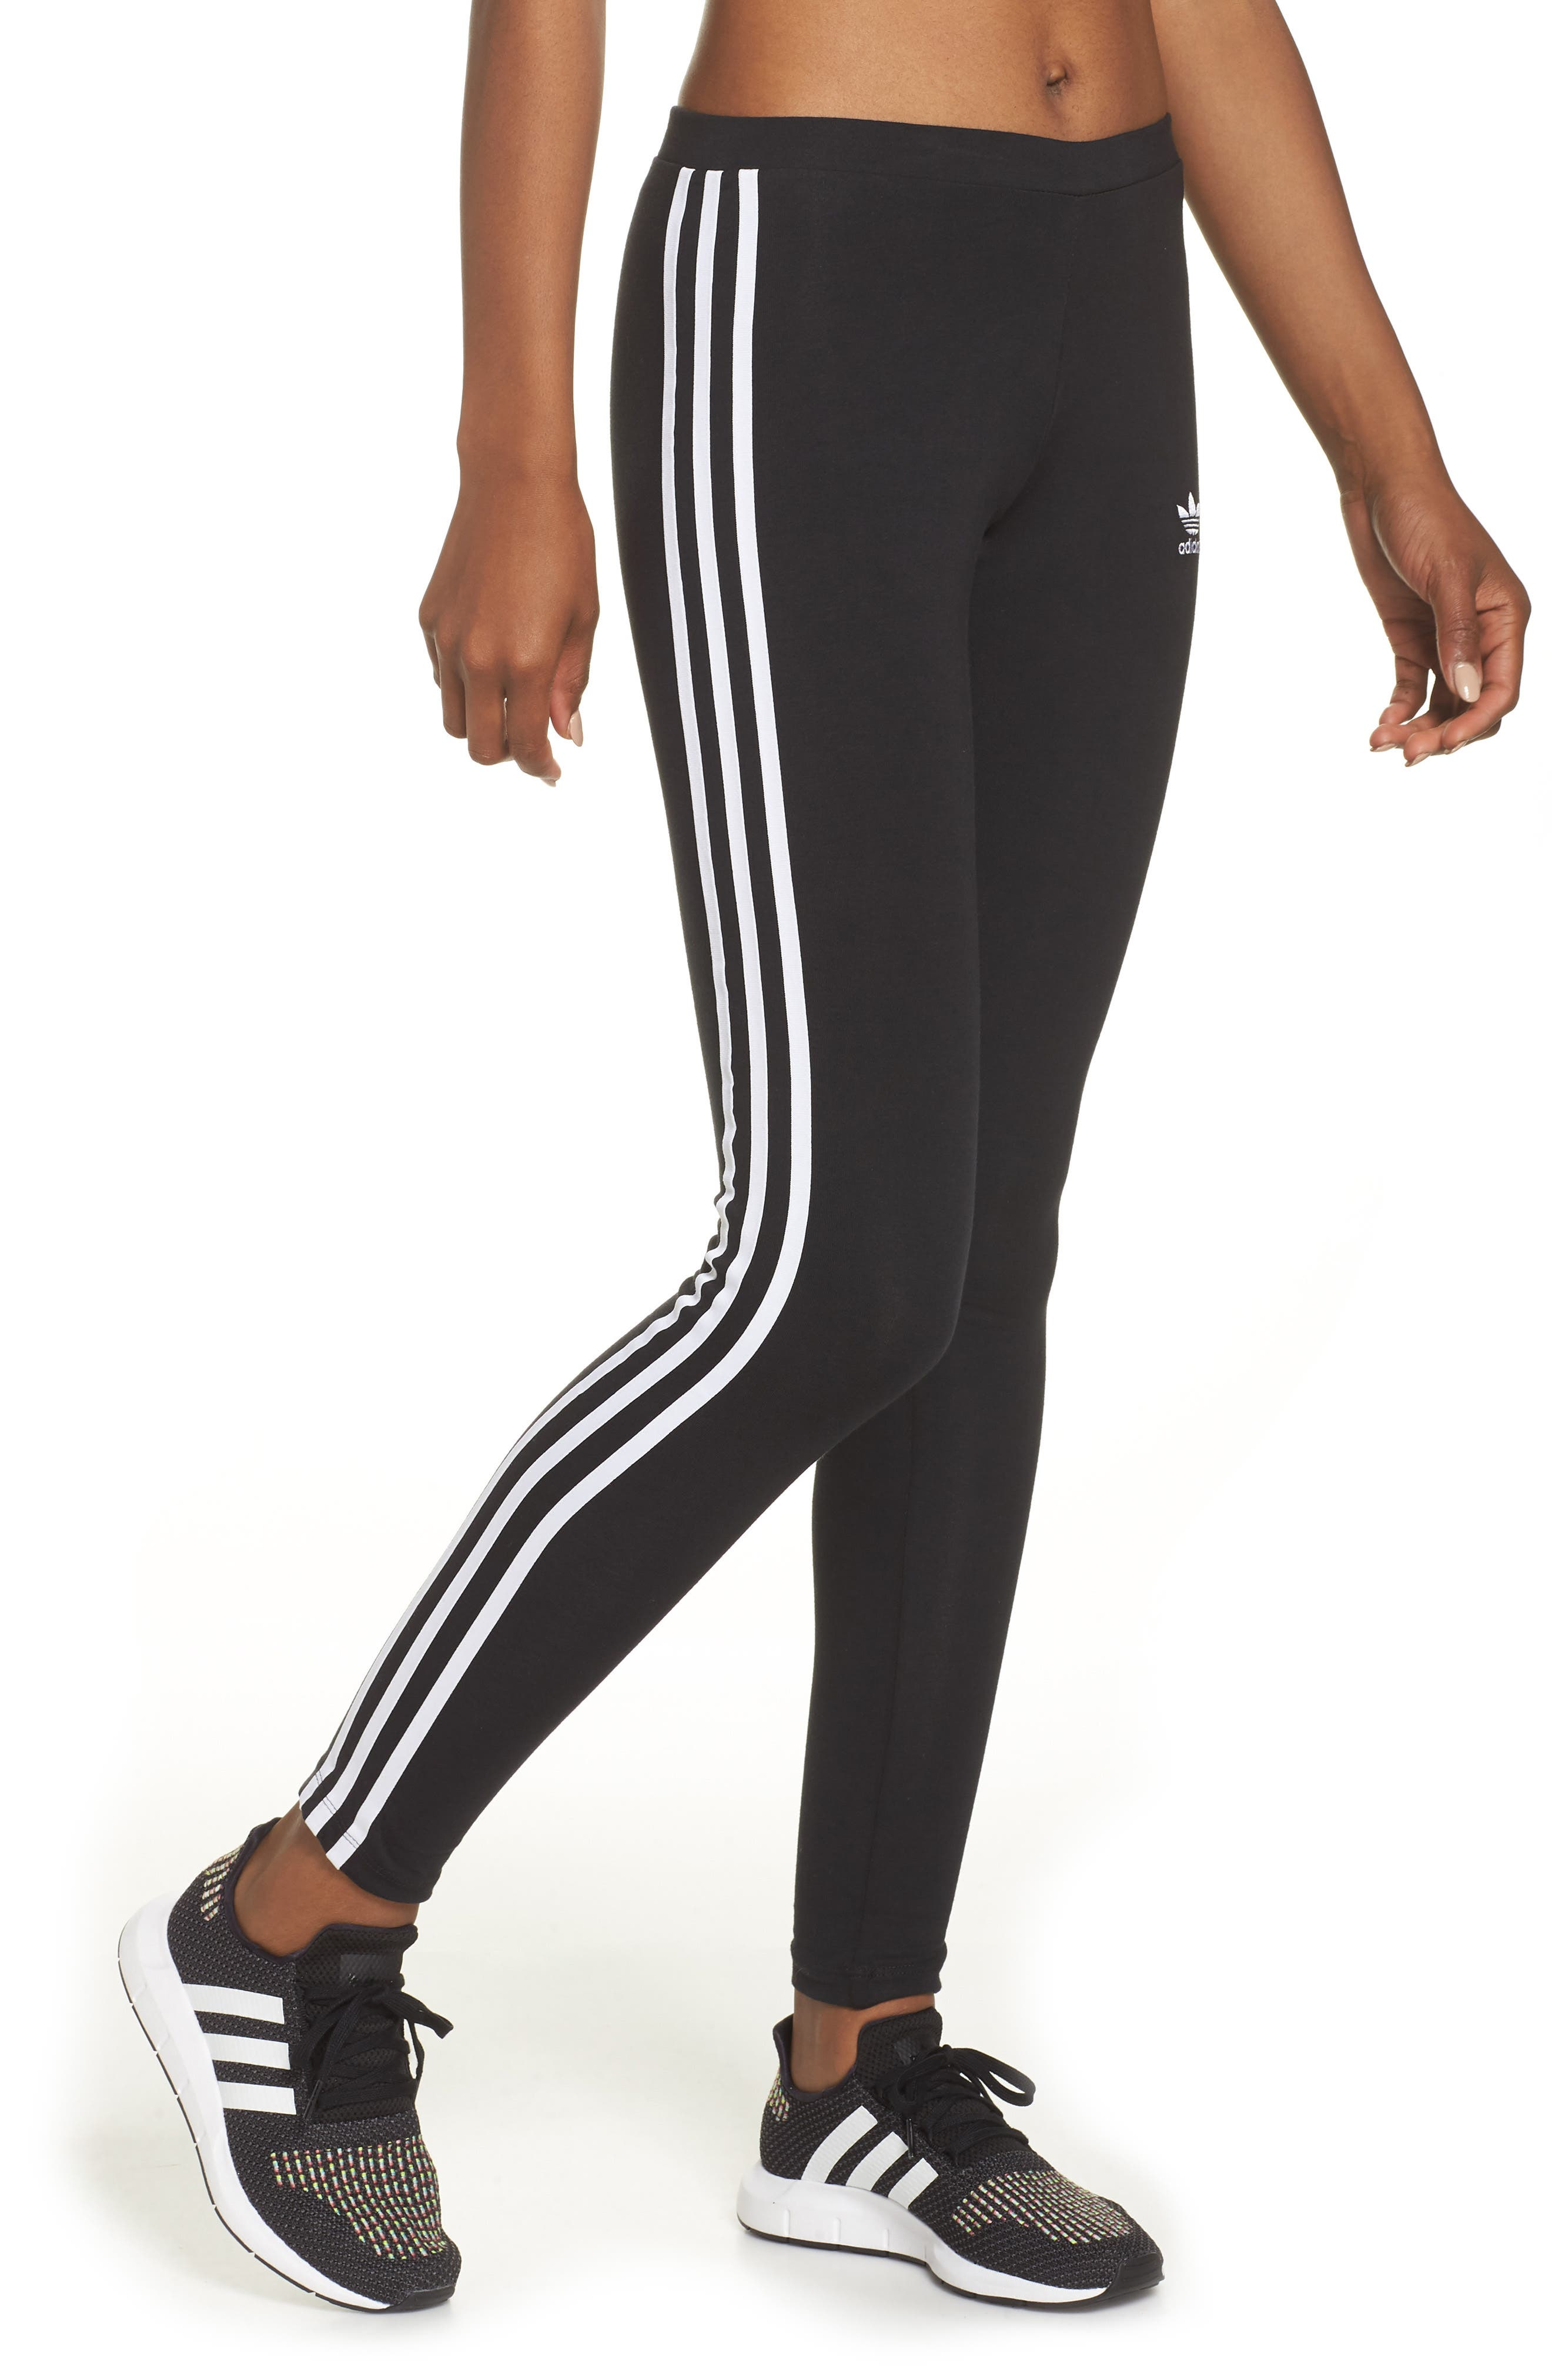 3-Stripes Tights,                         Main,                         color, BLACK